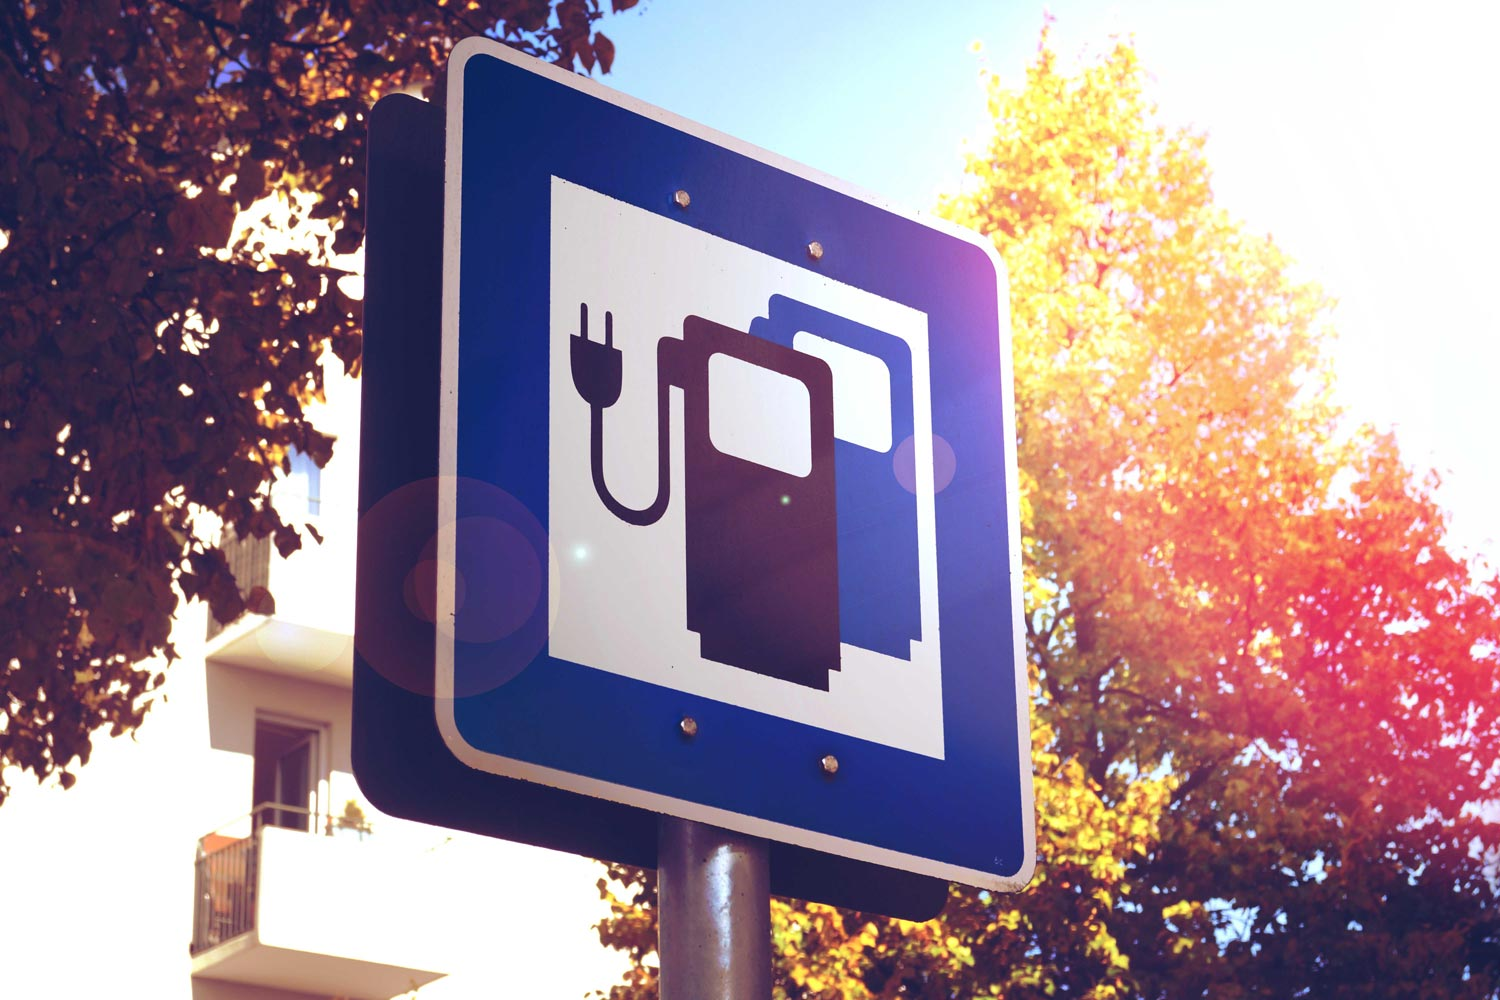 EV Infrastructure and Fuel Retailers